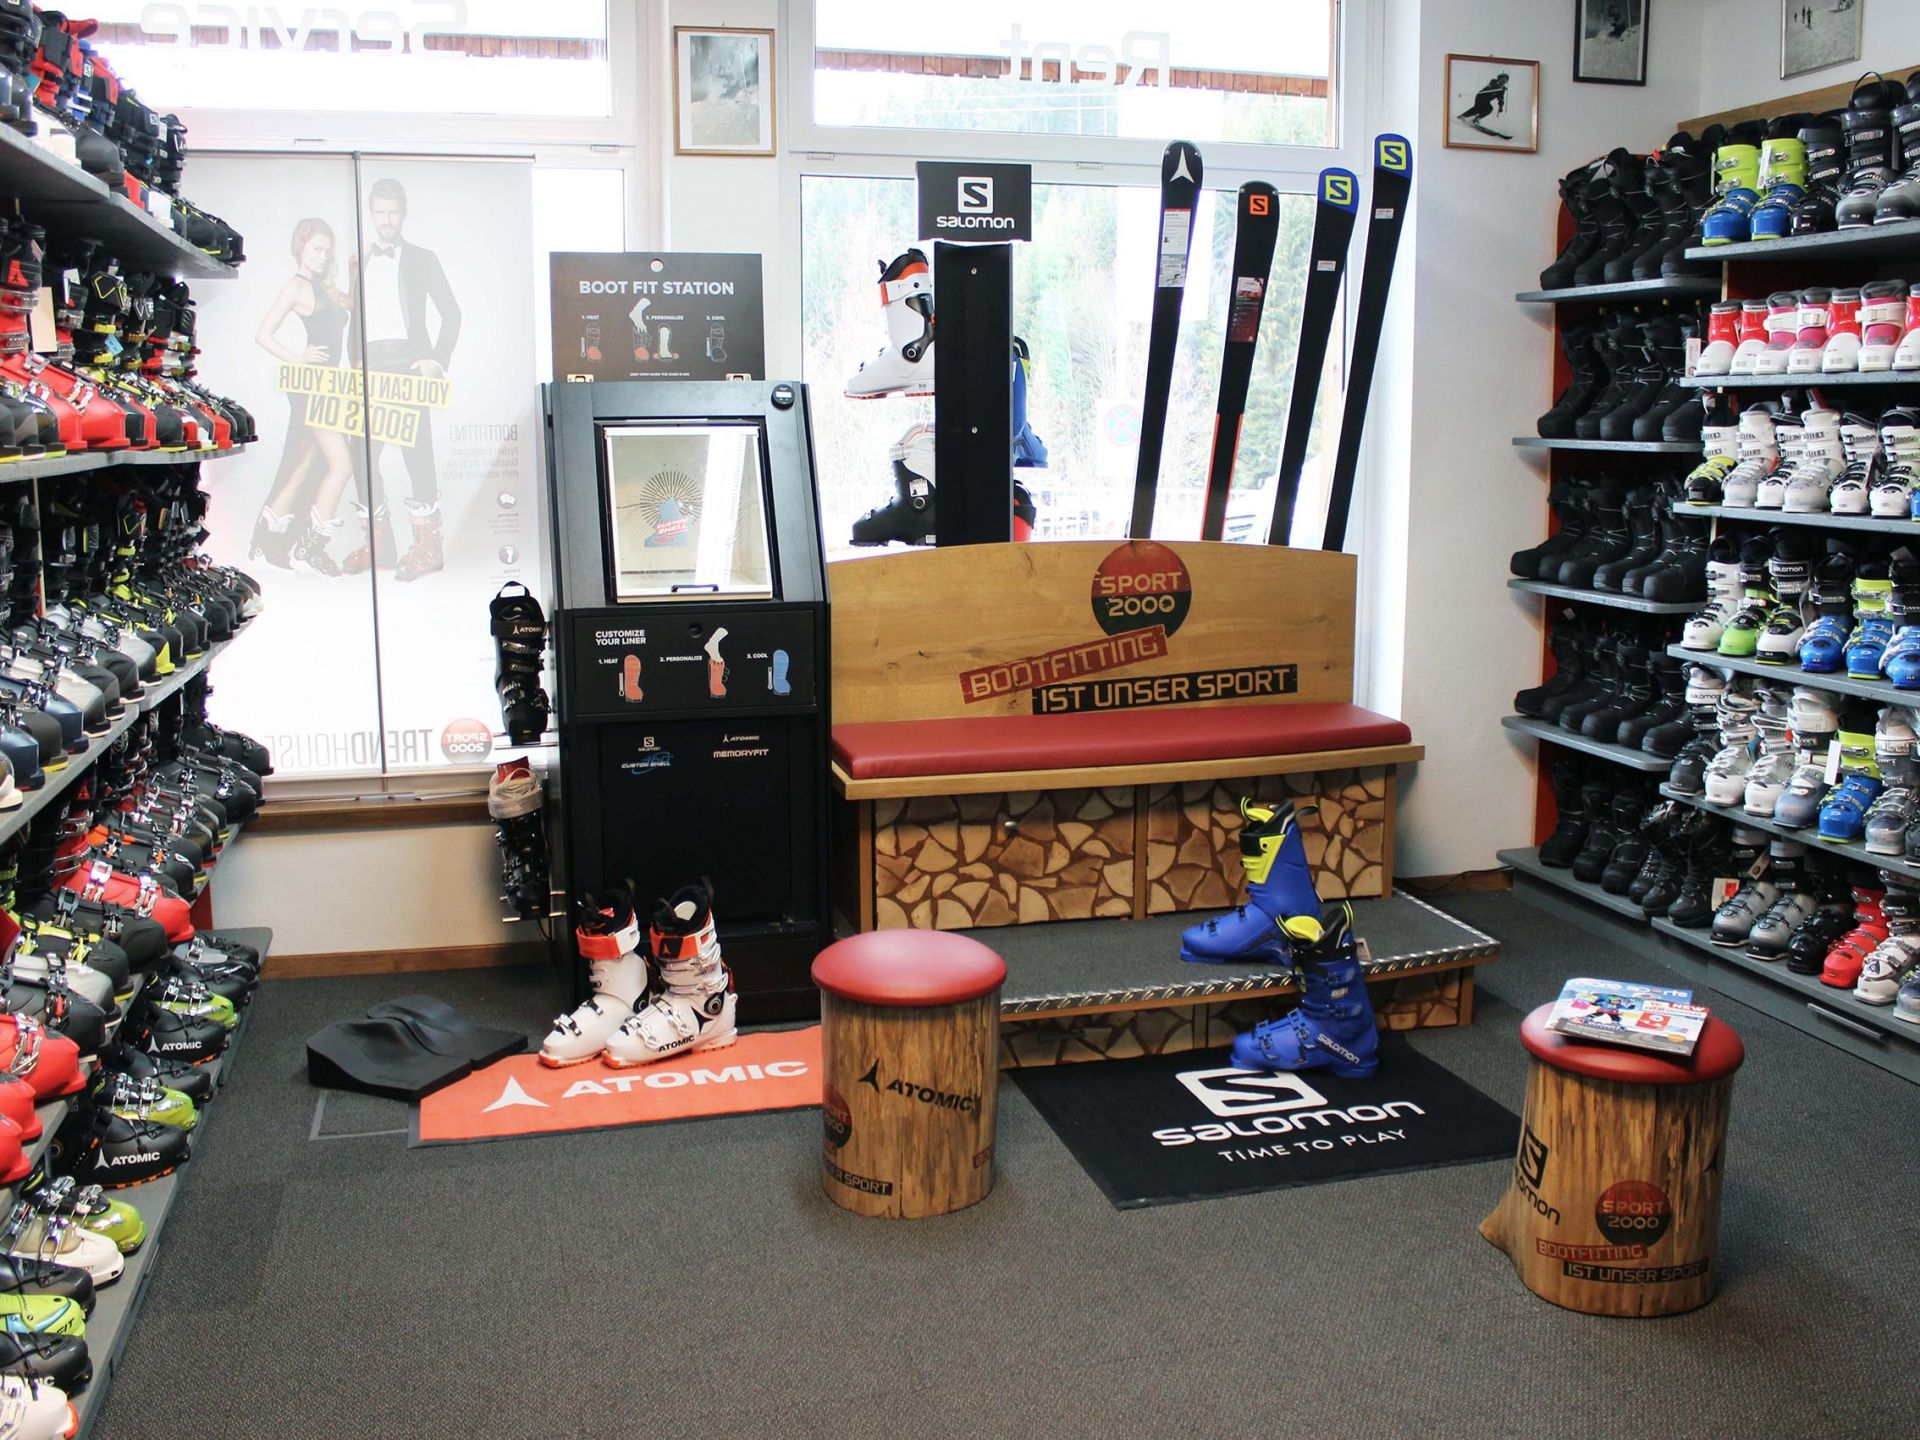 Get your customized boots in our bootfitting area